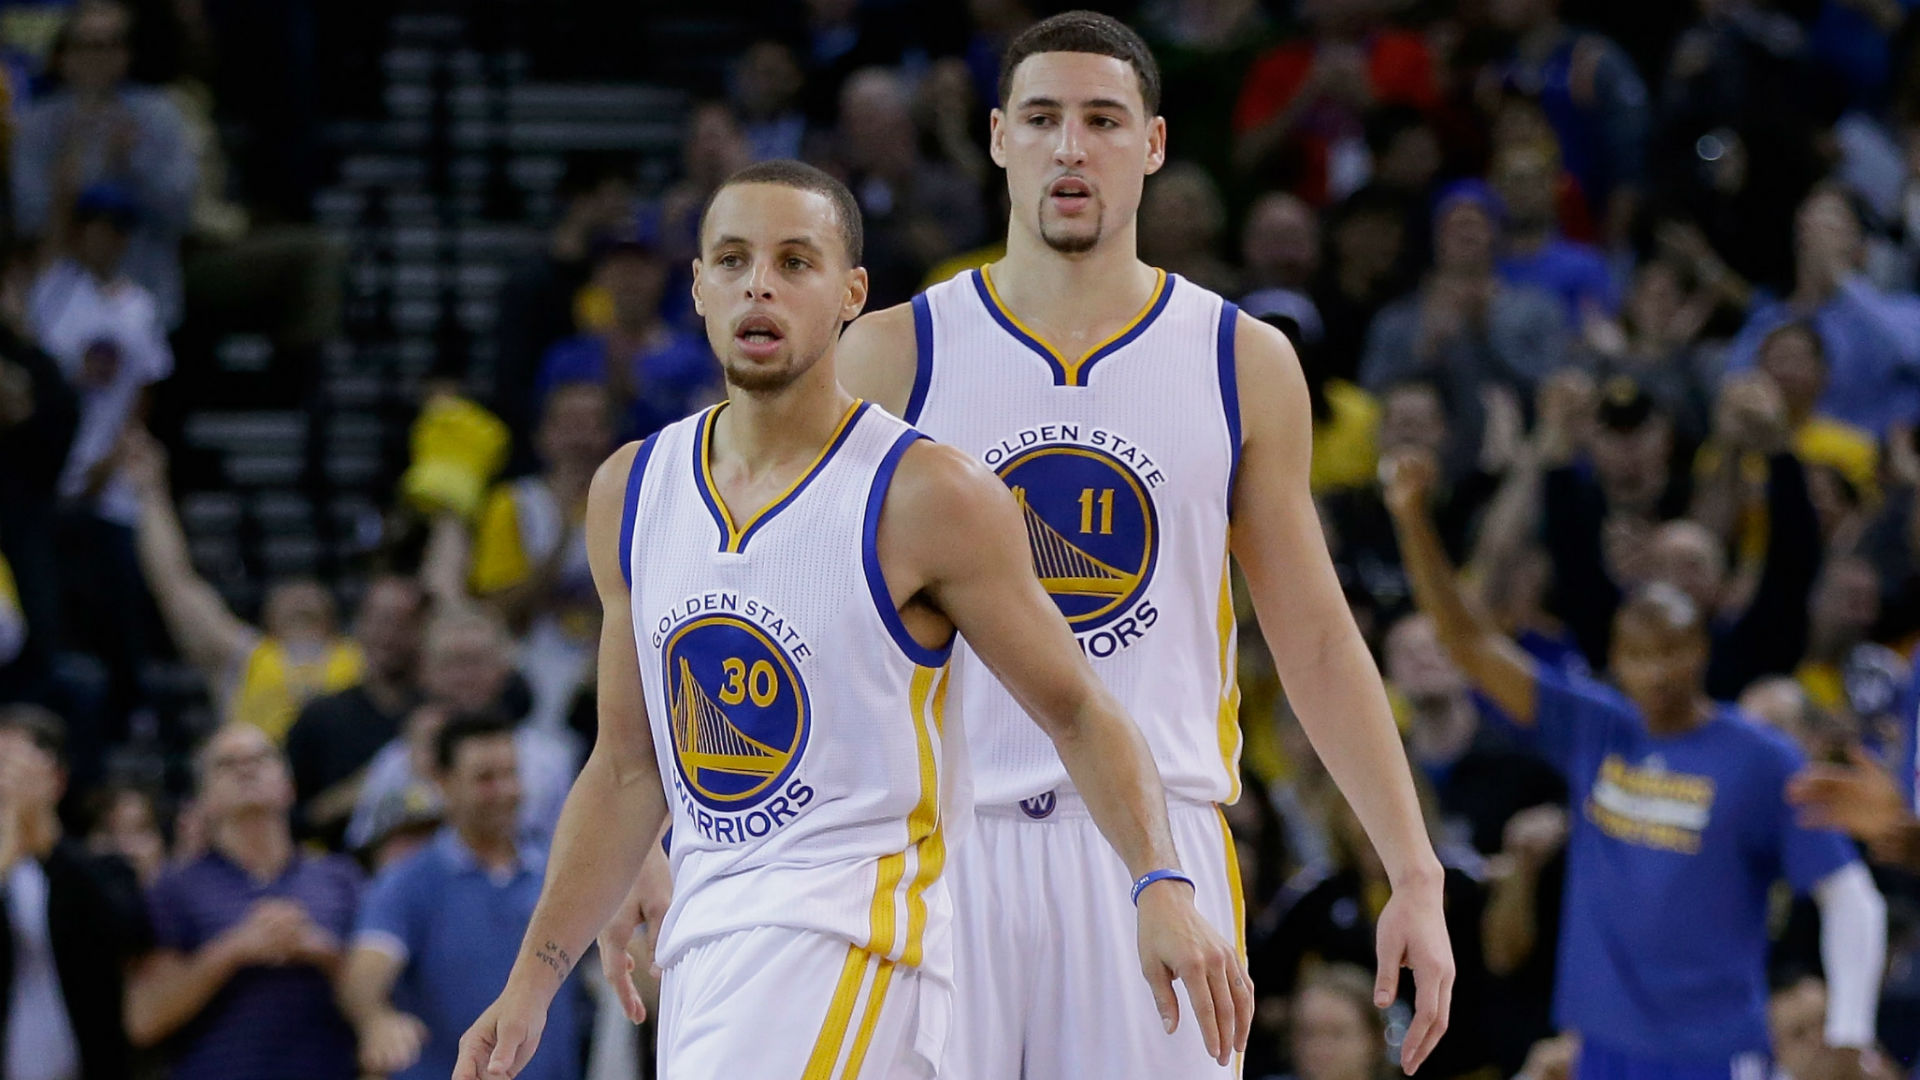 NBA Championship odds - Warriors earn favorite status for first time this season